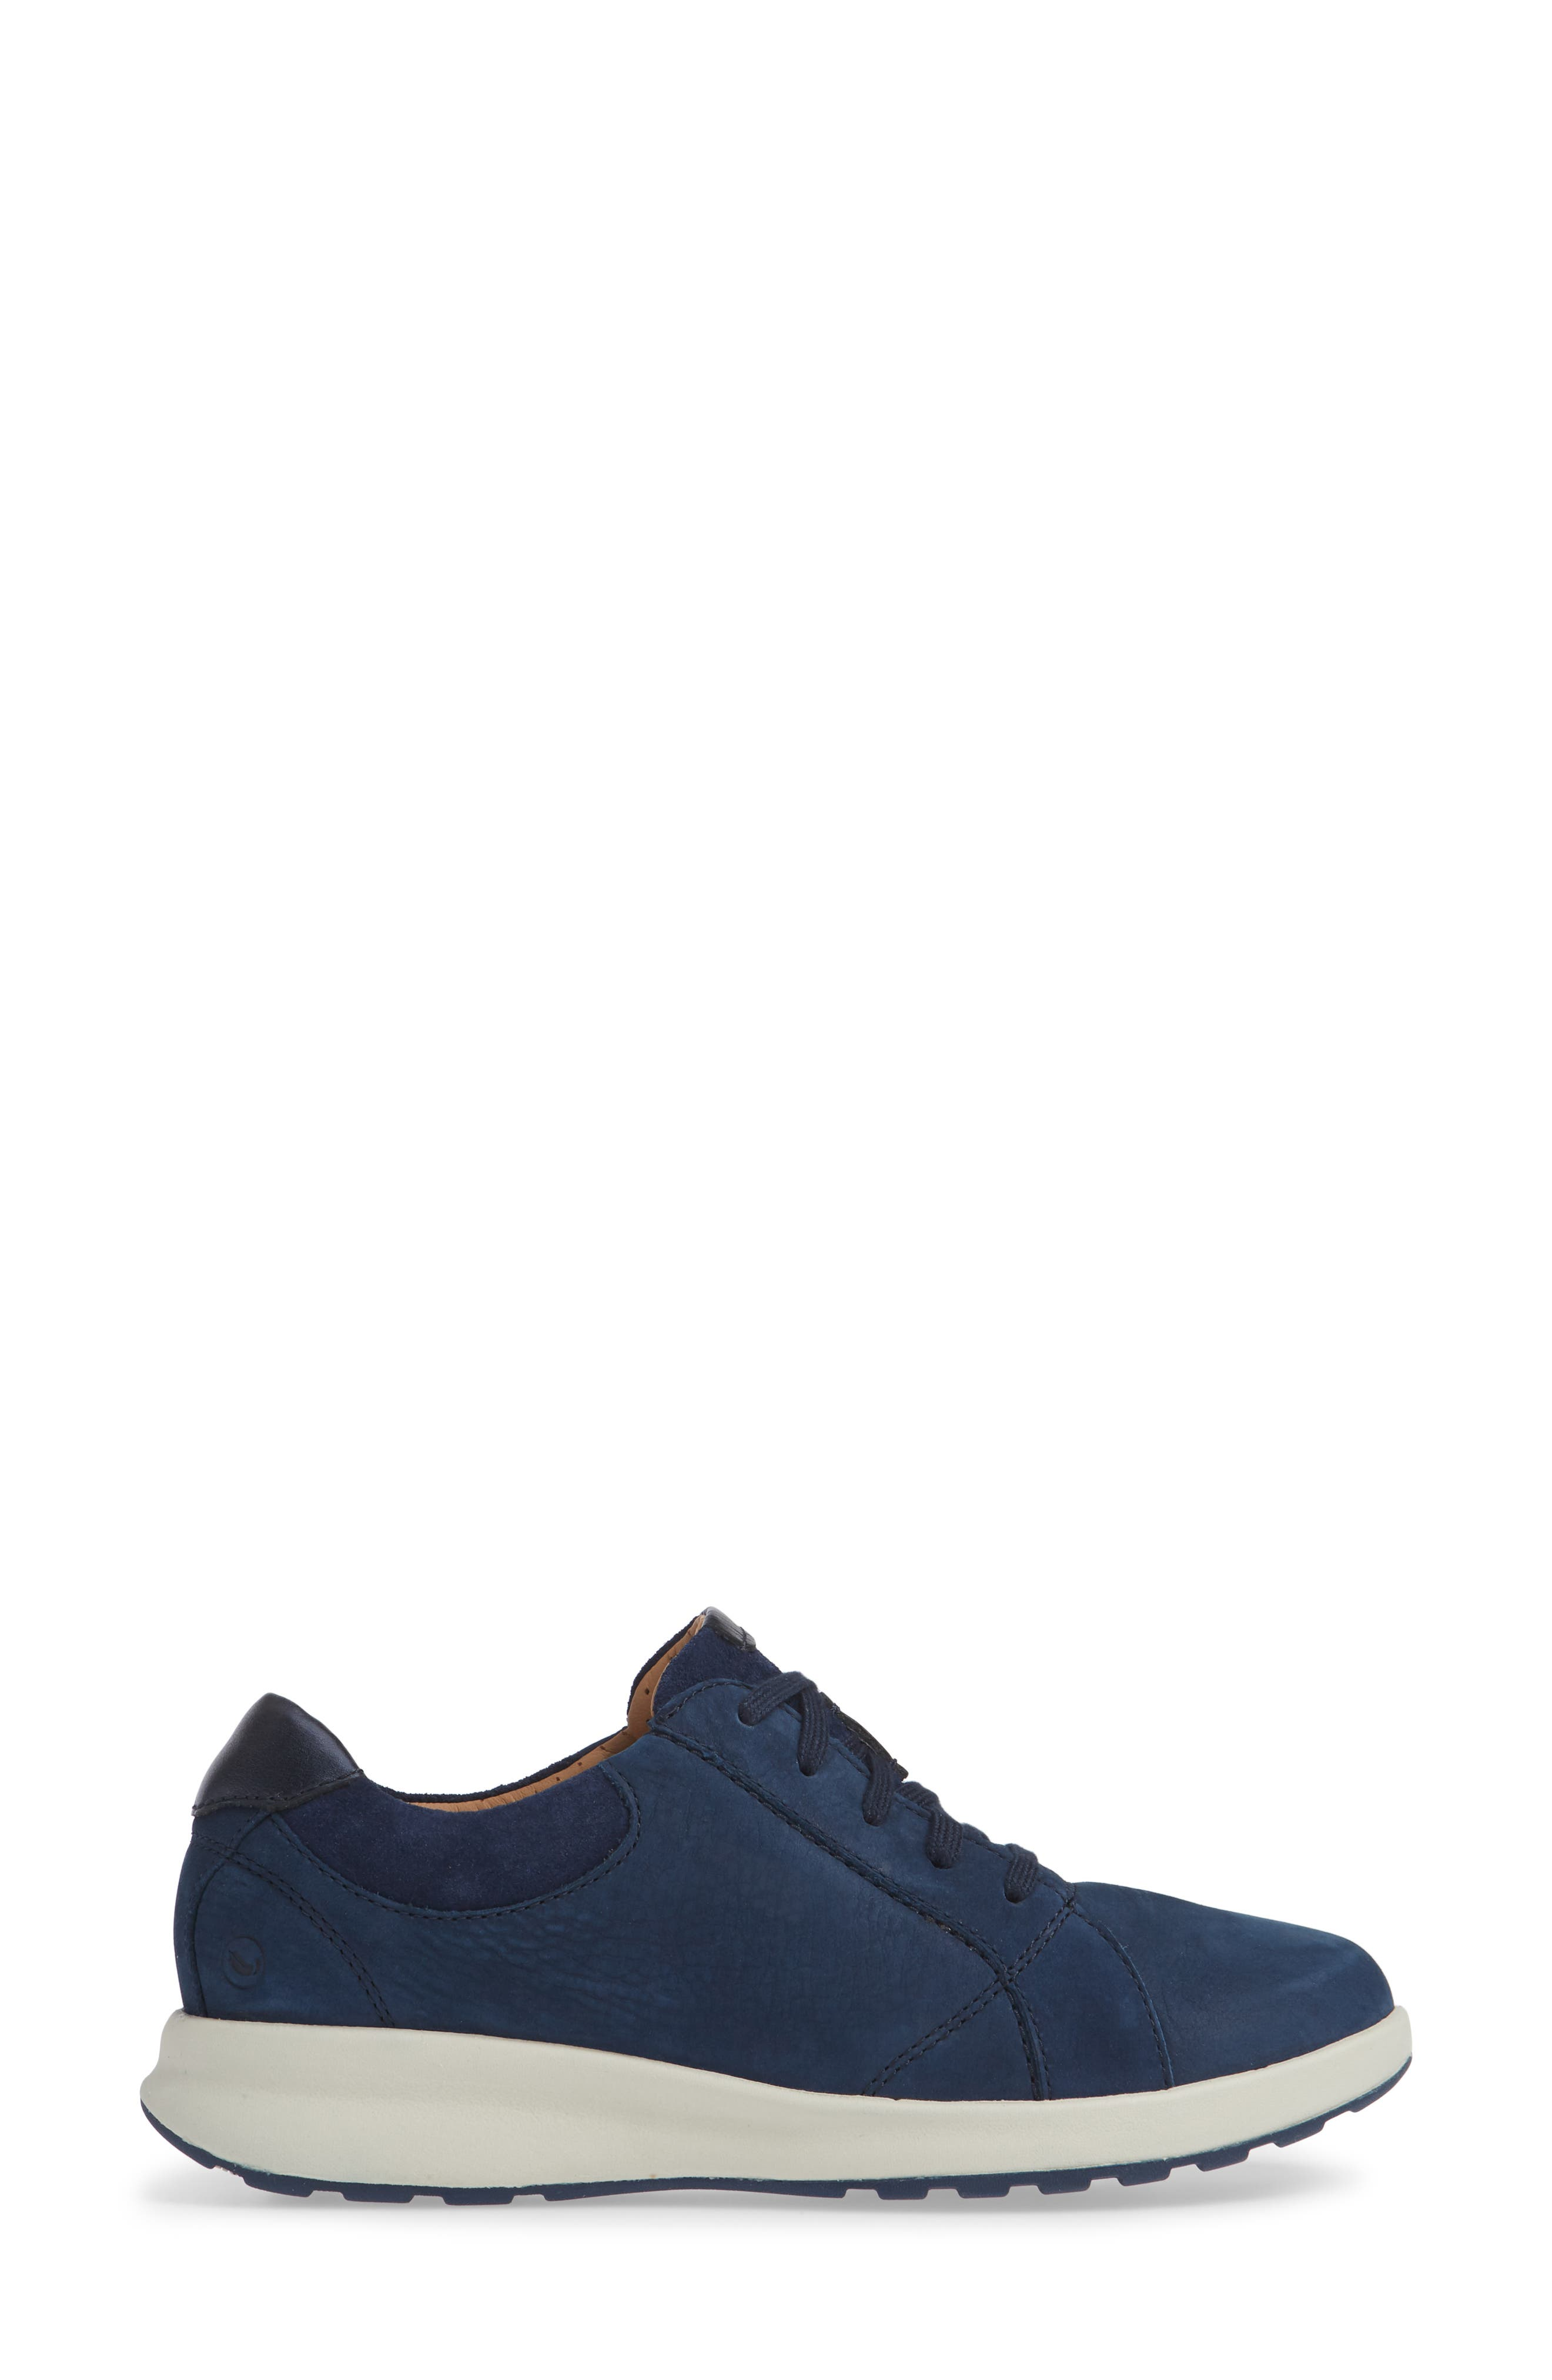 UnAdorn Lace-Up Sneaker,                             Alternate thumbnail 3, color,                             NAVY NUBUCK